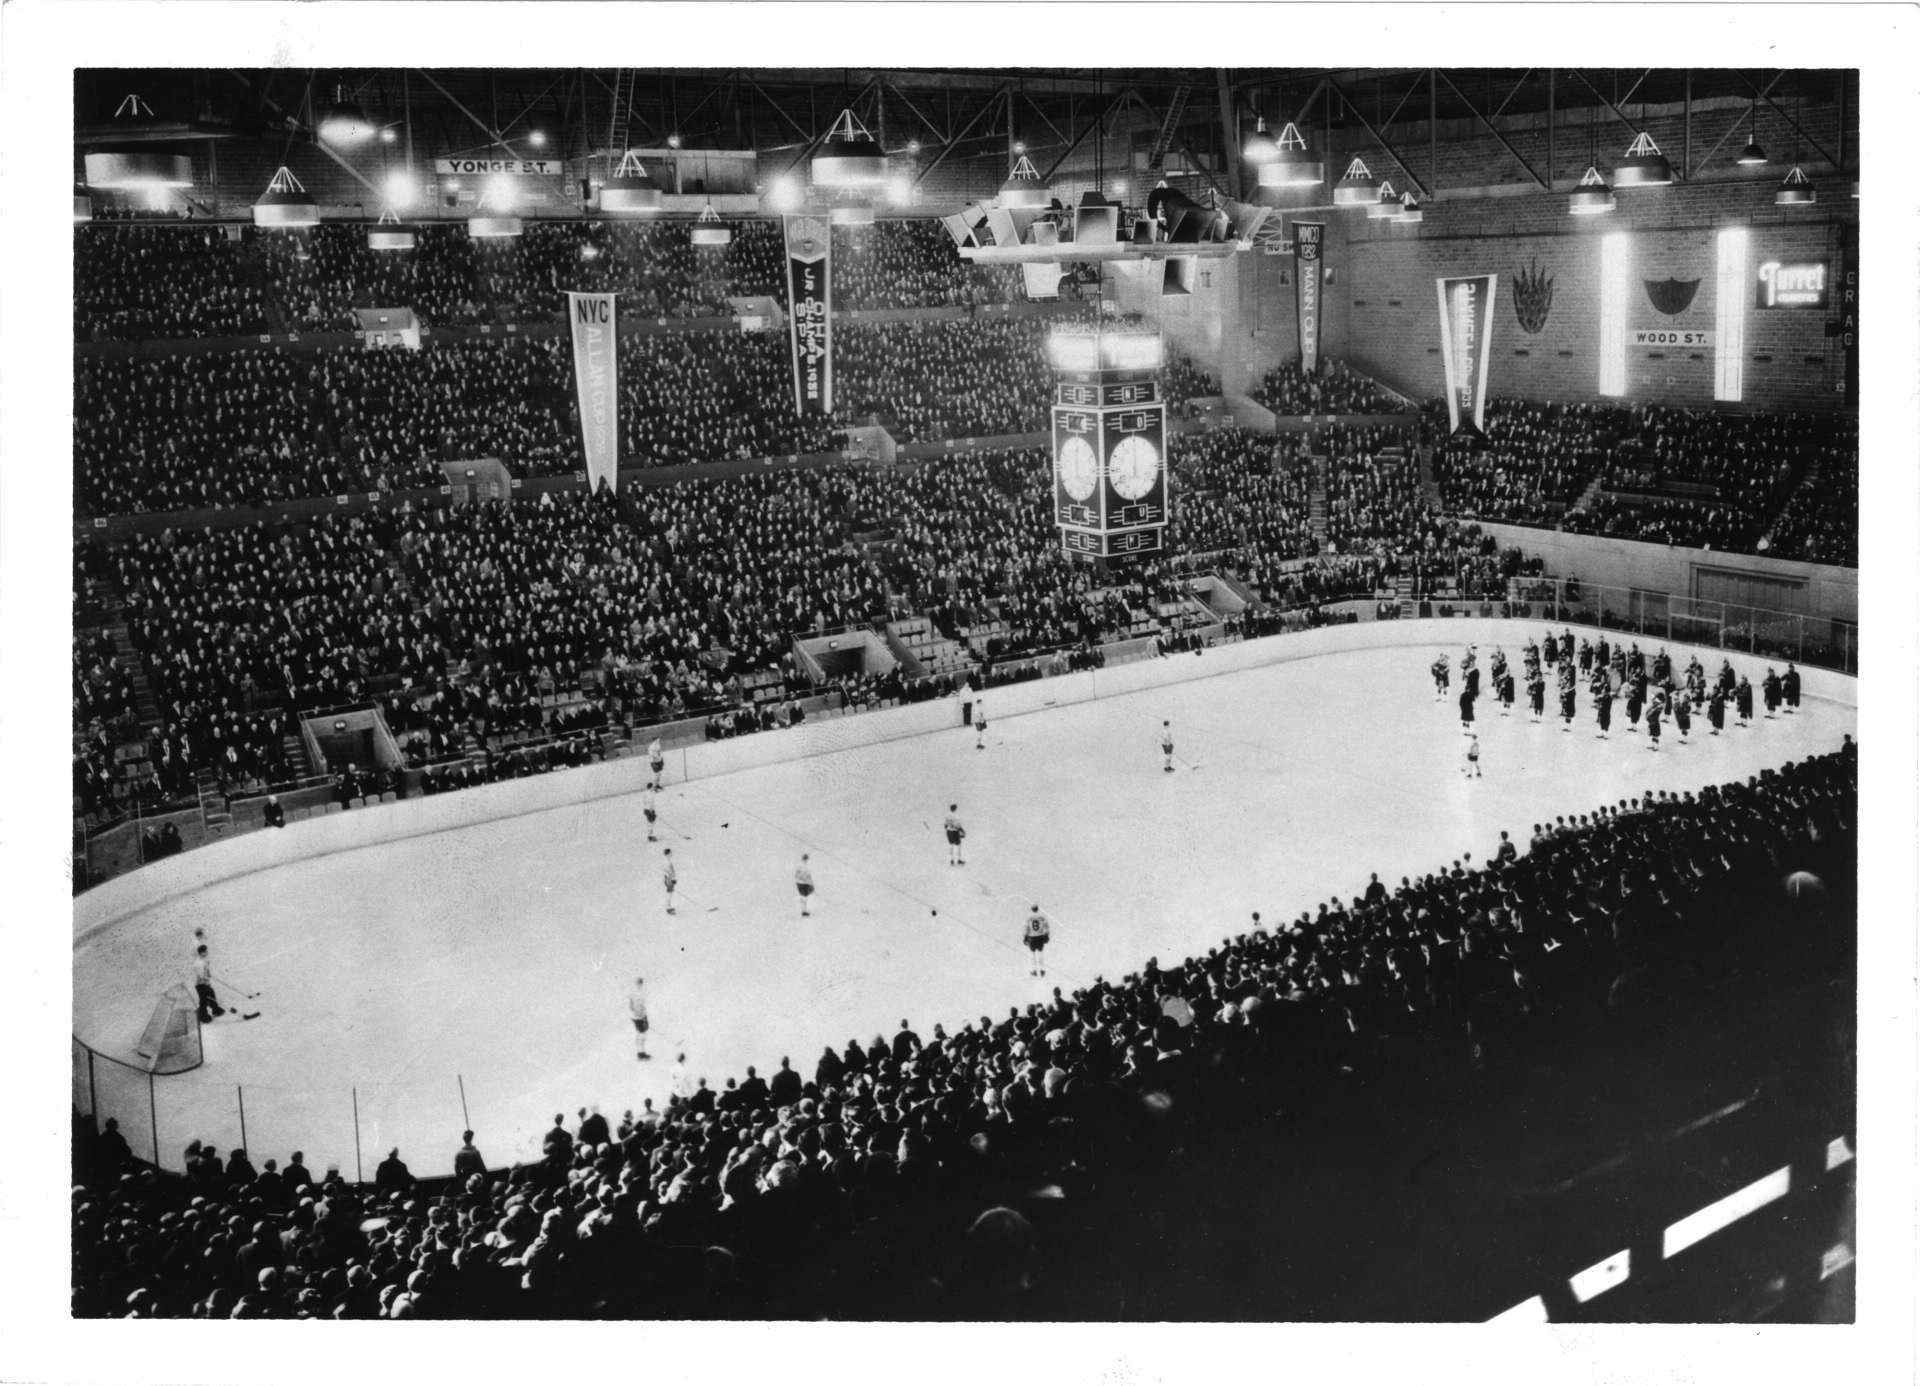 A packed hockey arena. One team and a marching band are on the ice.